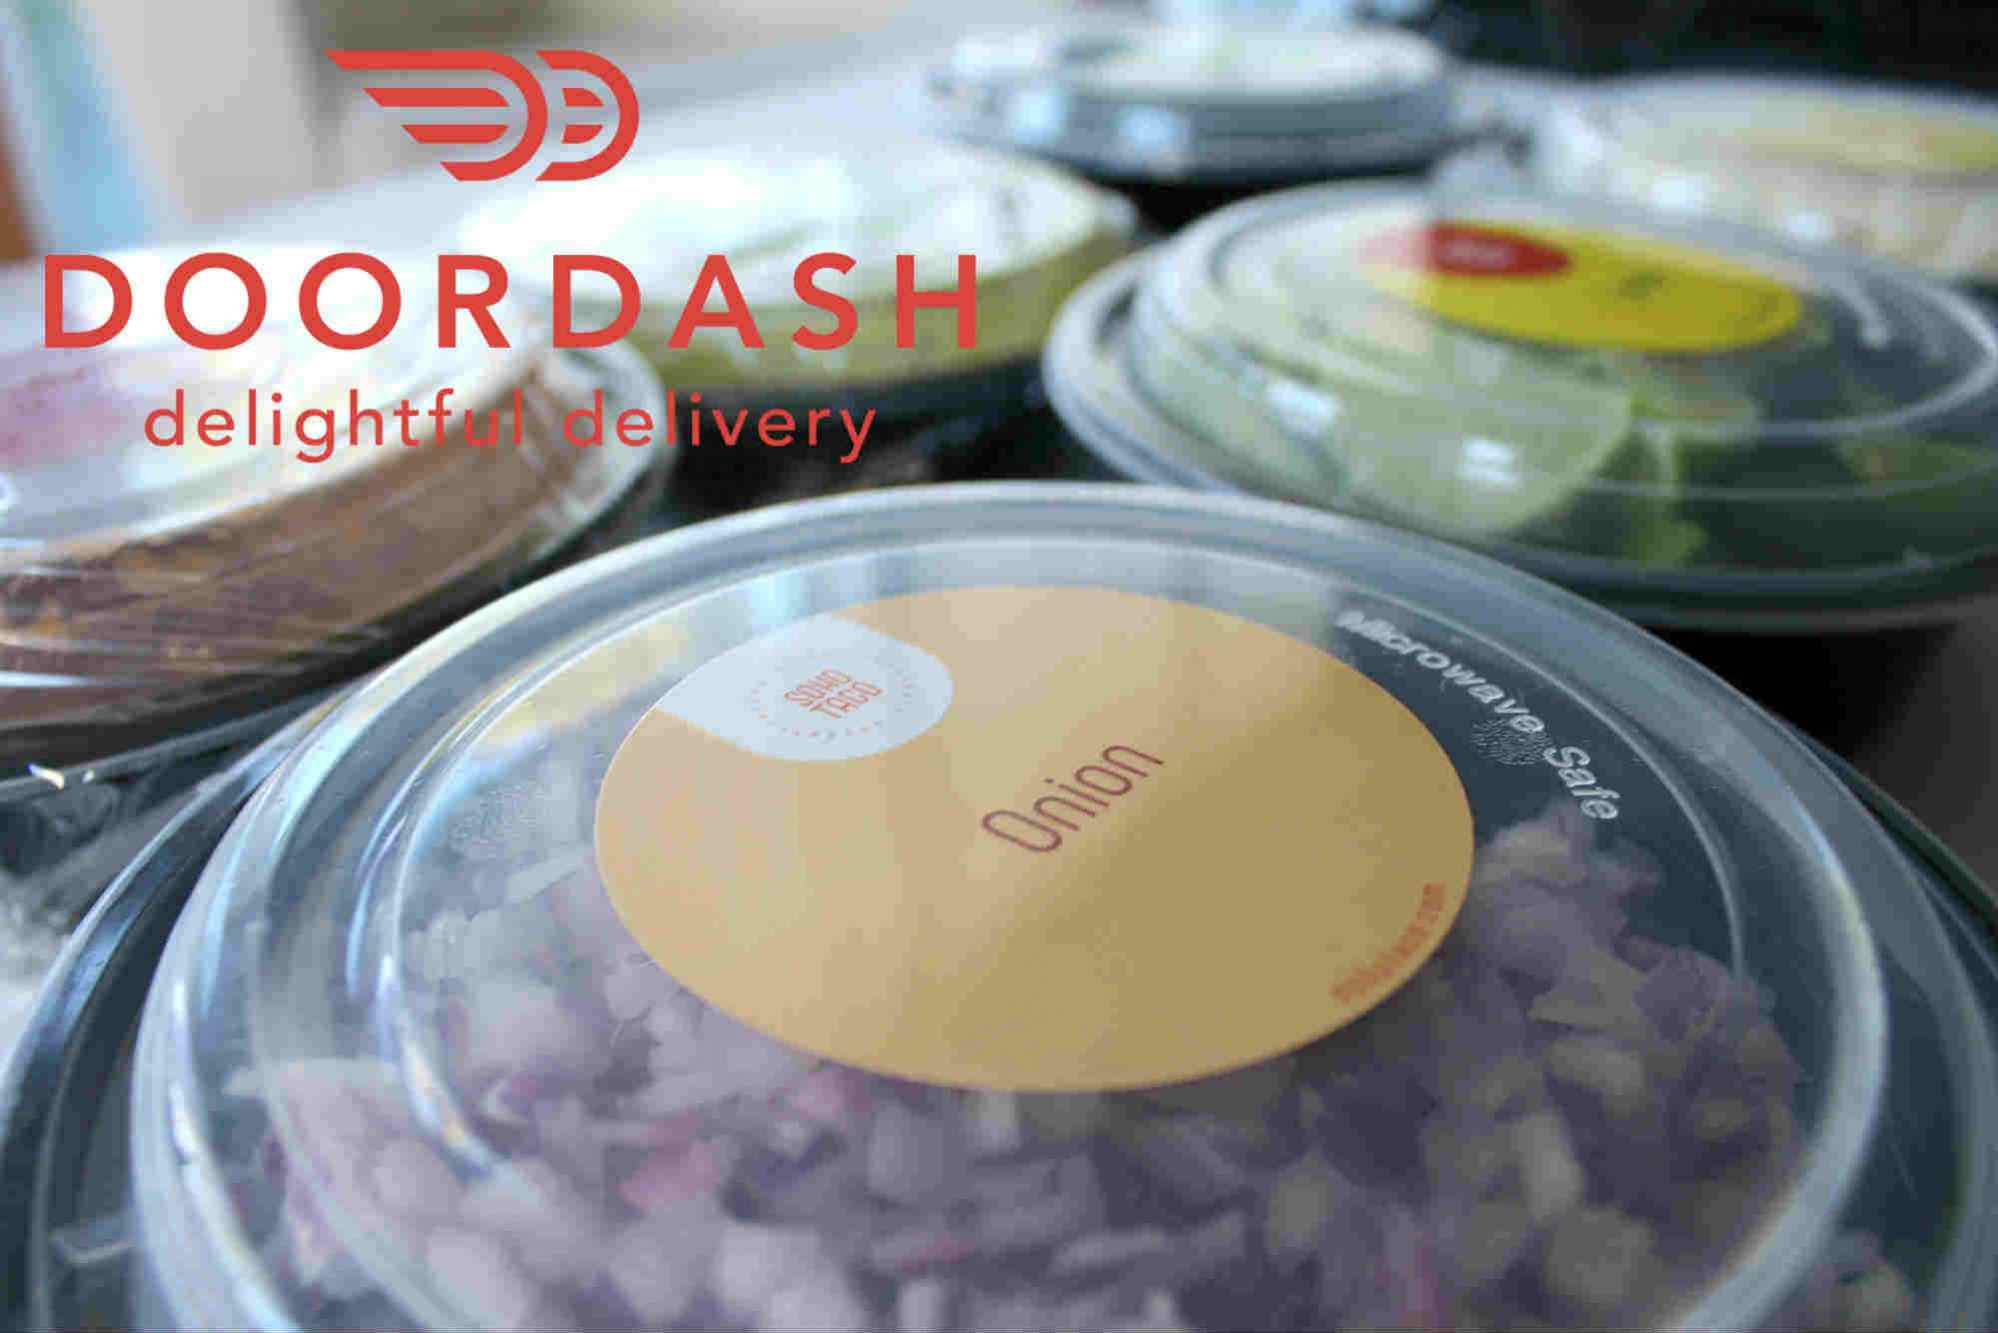 SOHO TACO catering packages now delivered by Doordash